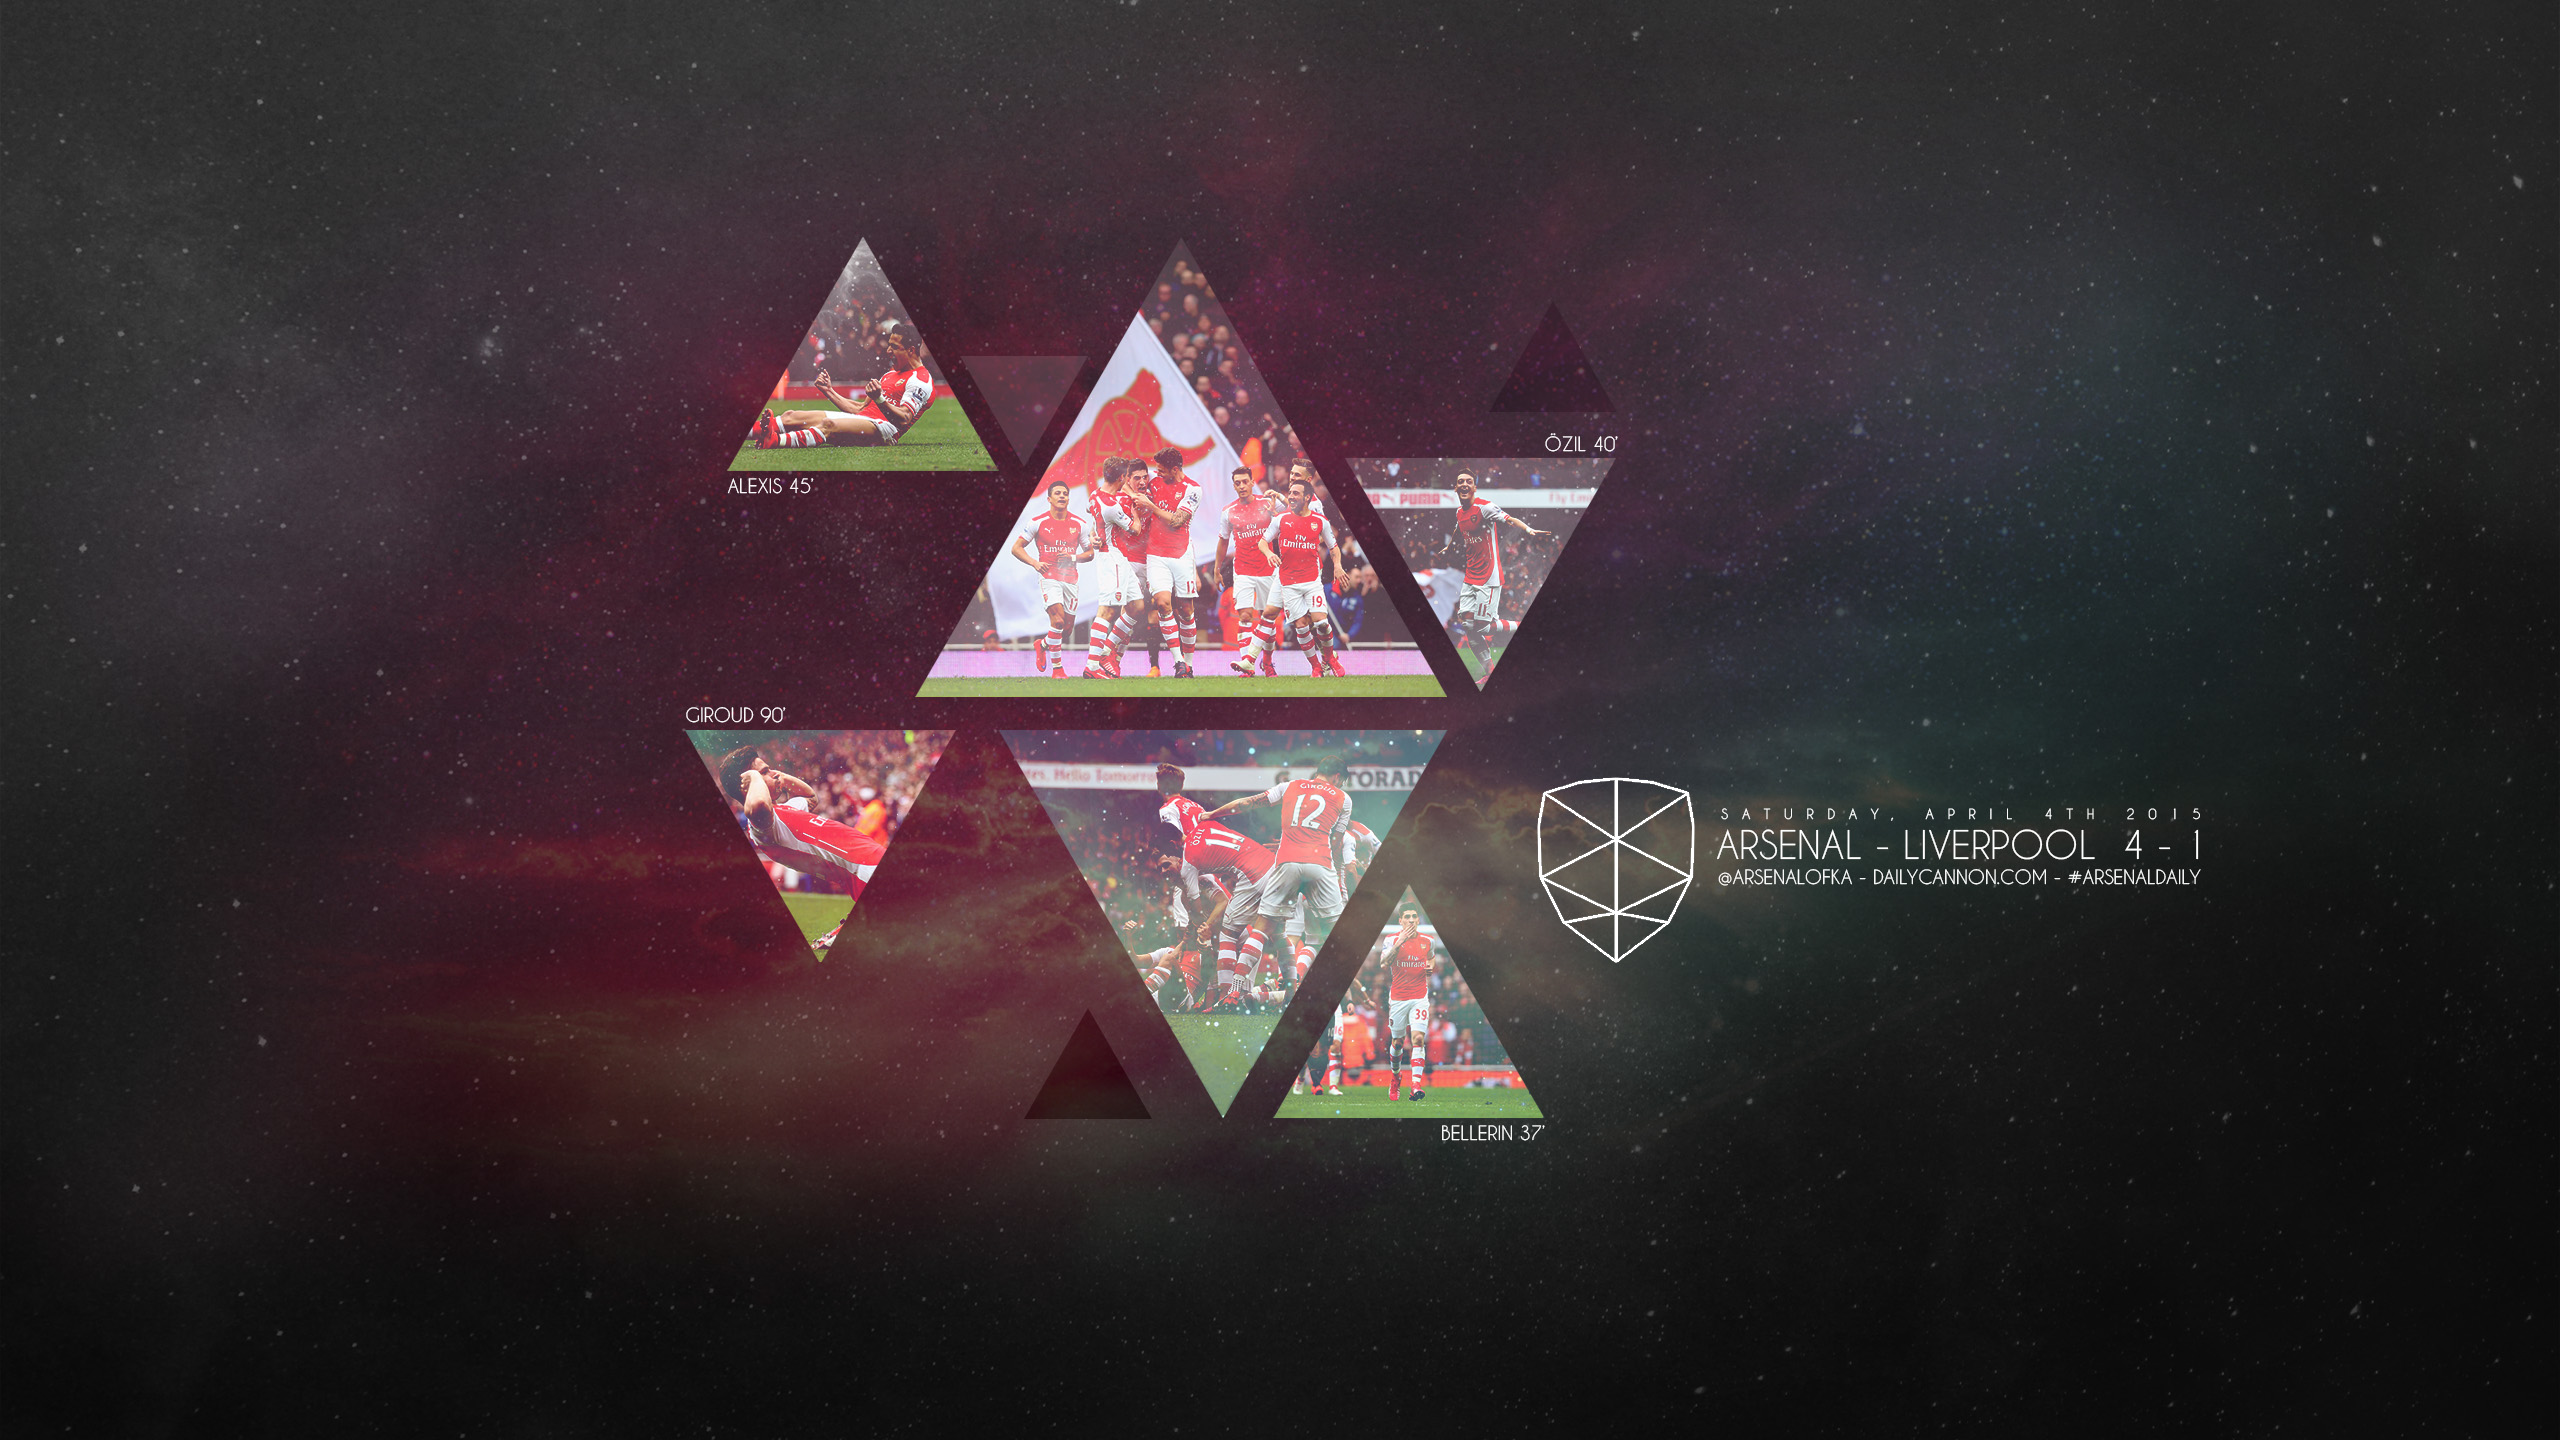 Arsenal smash liverpool wallpaper headers and covers for Wallpaper photo